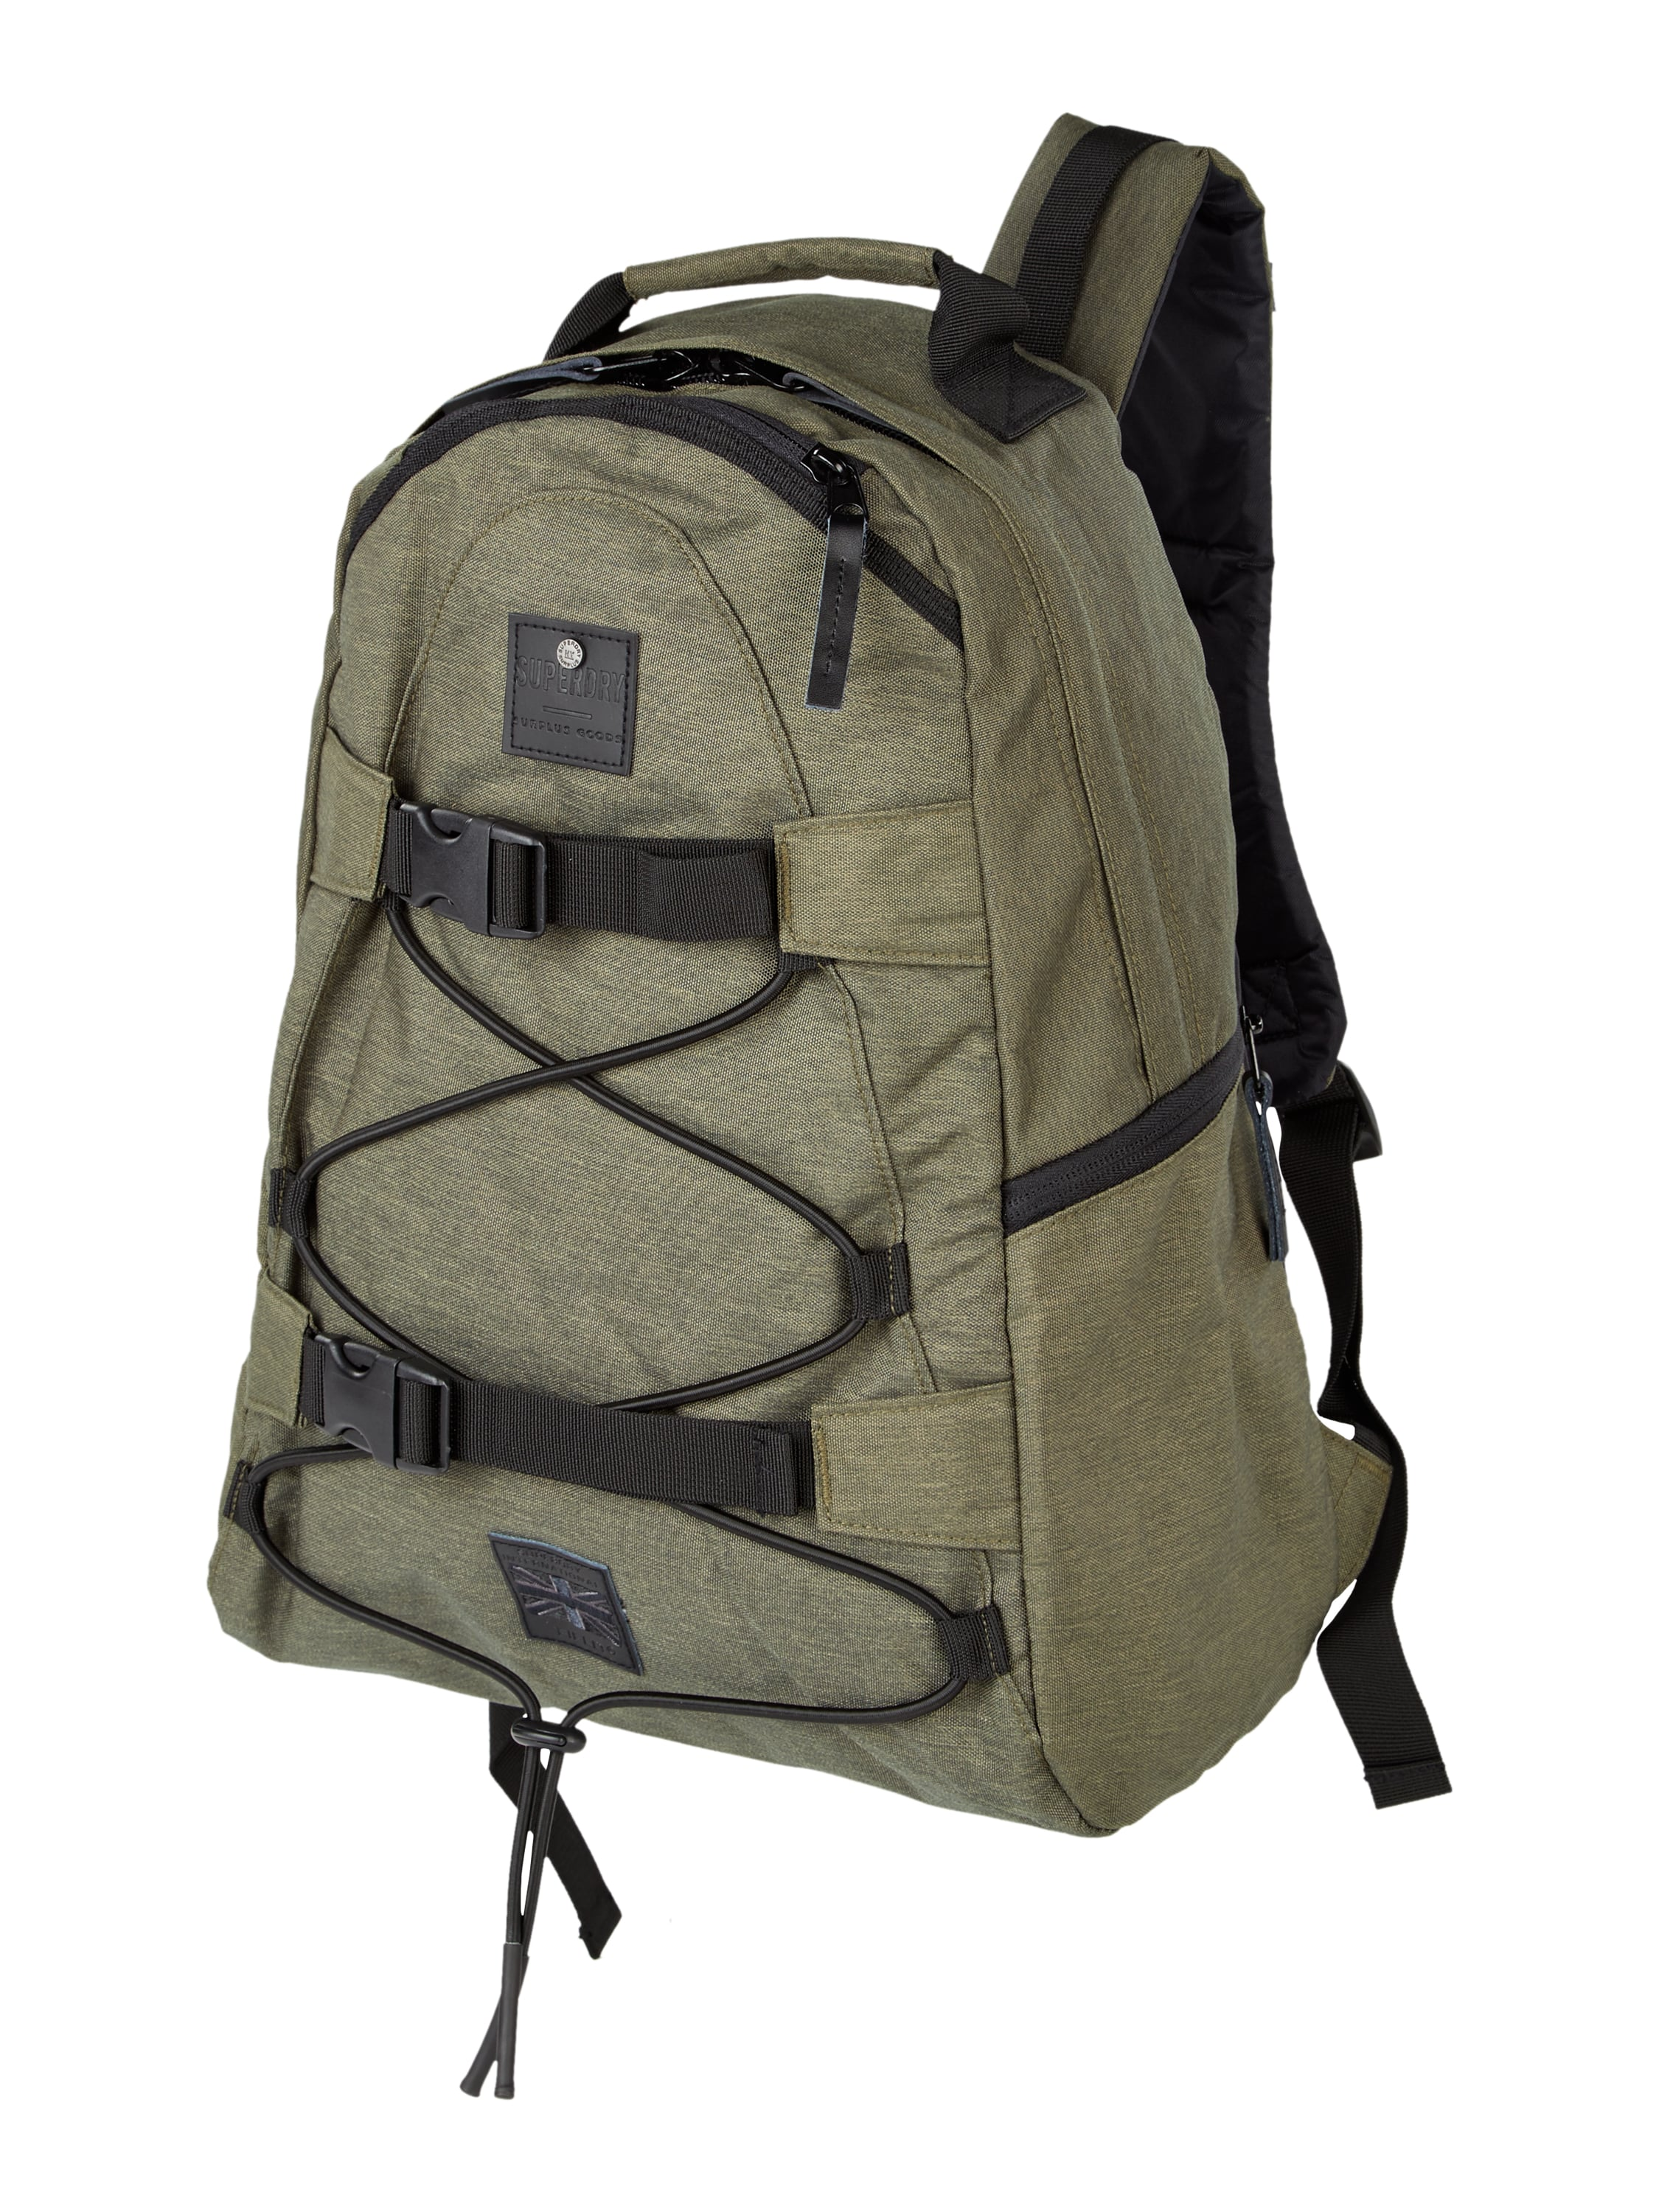 superdry rucksack in melangeoptik in gr n online kaufen. Black Bedroom Furniture Sets. Home Design Ideas